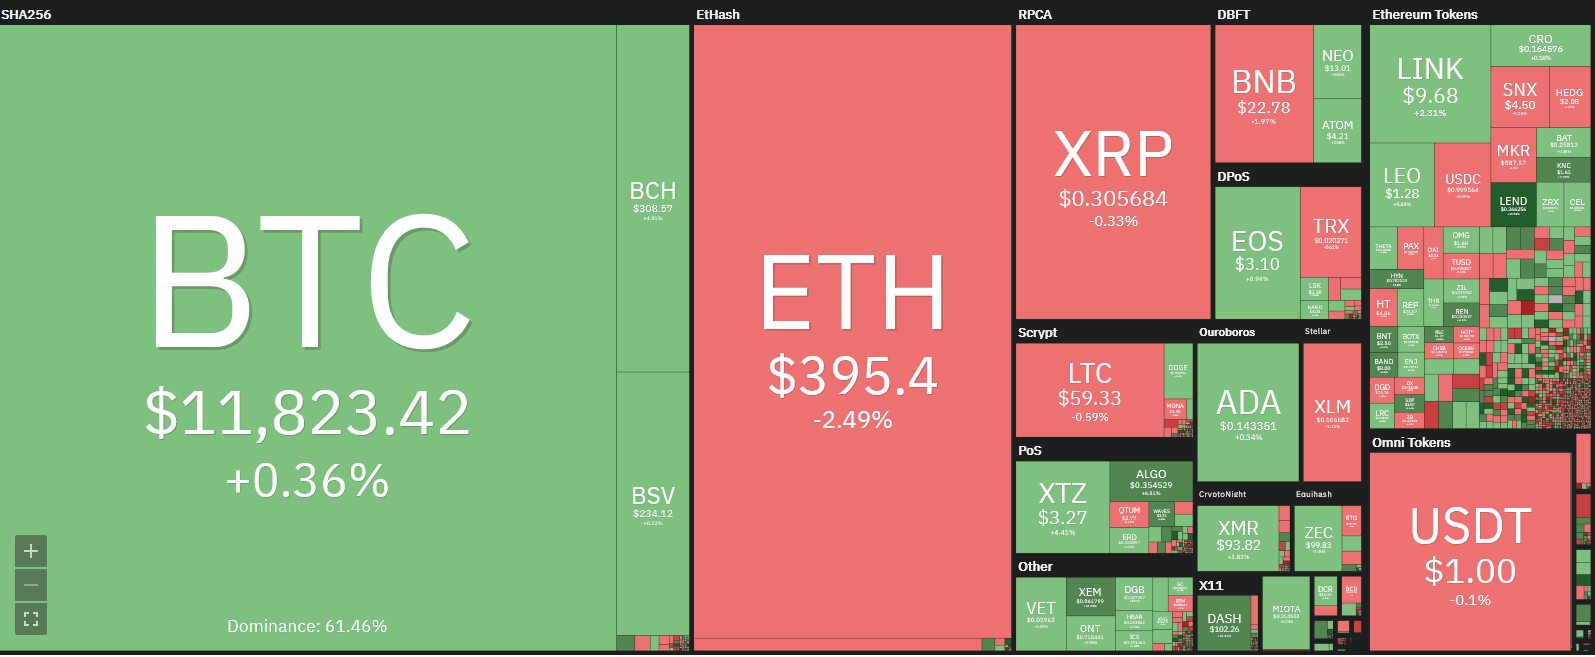 Ether price - eth usd - coin360 heatmap